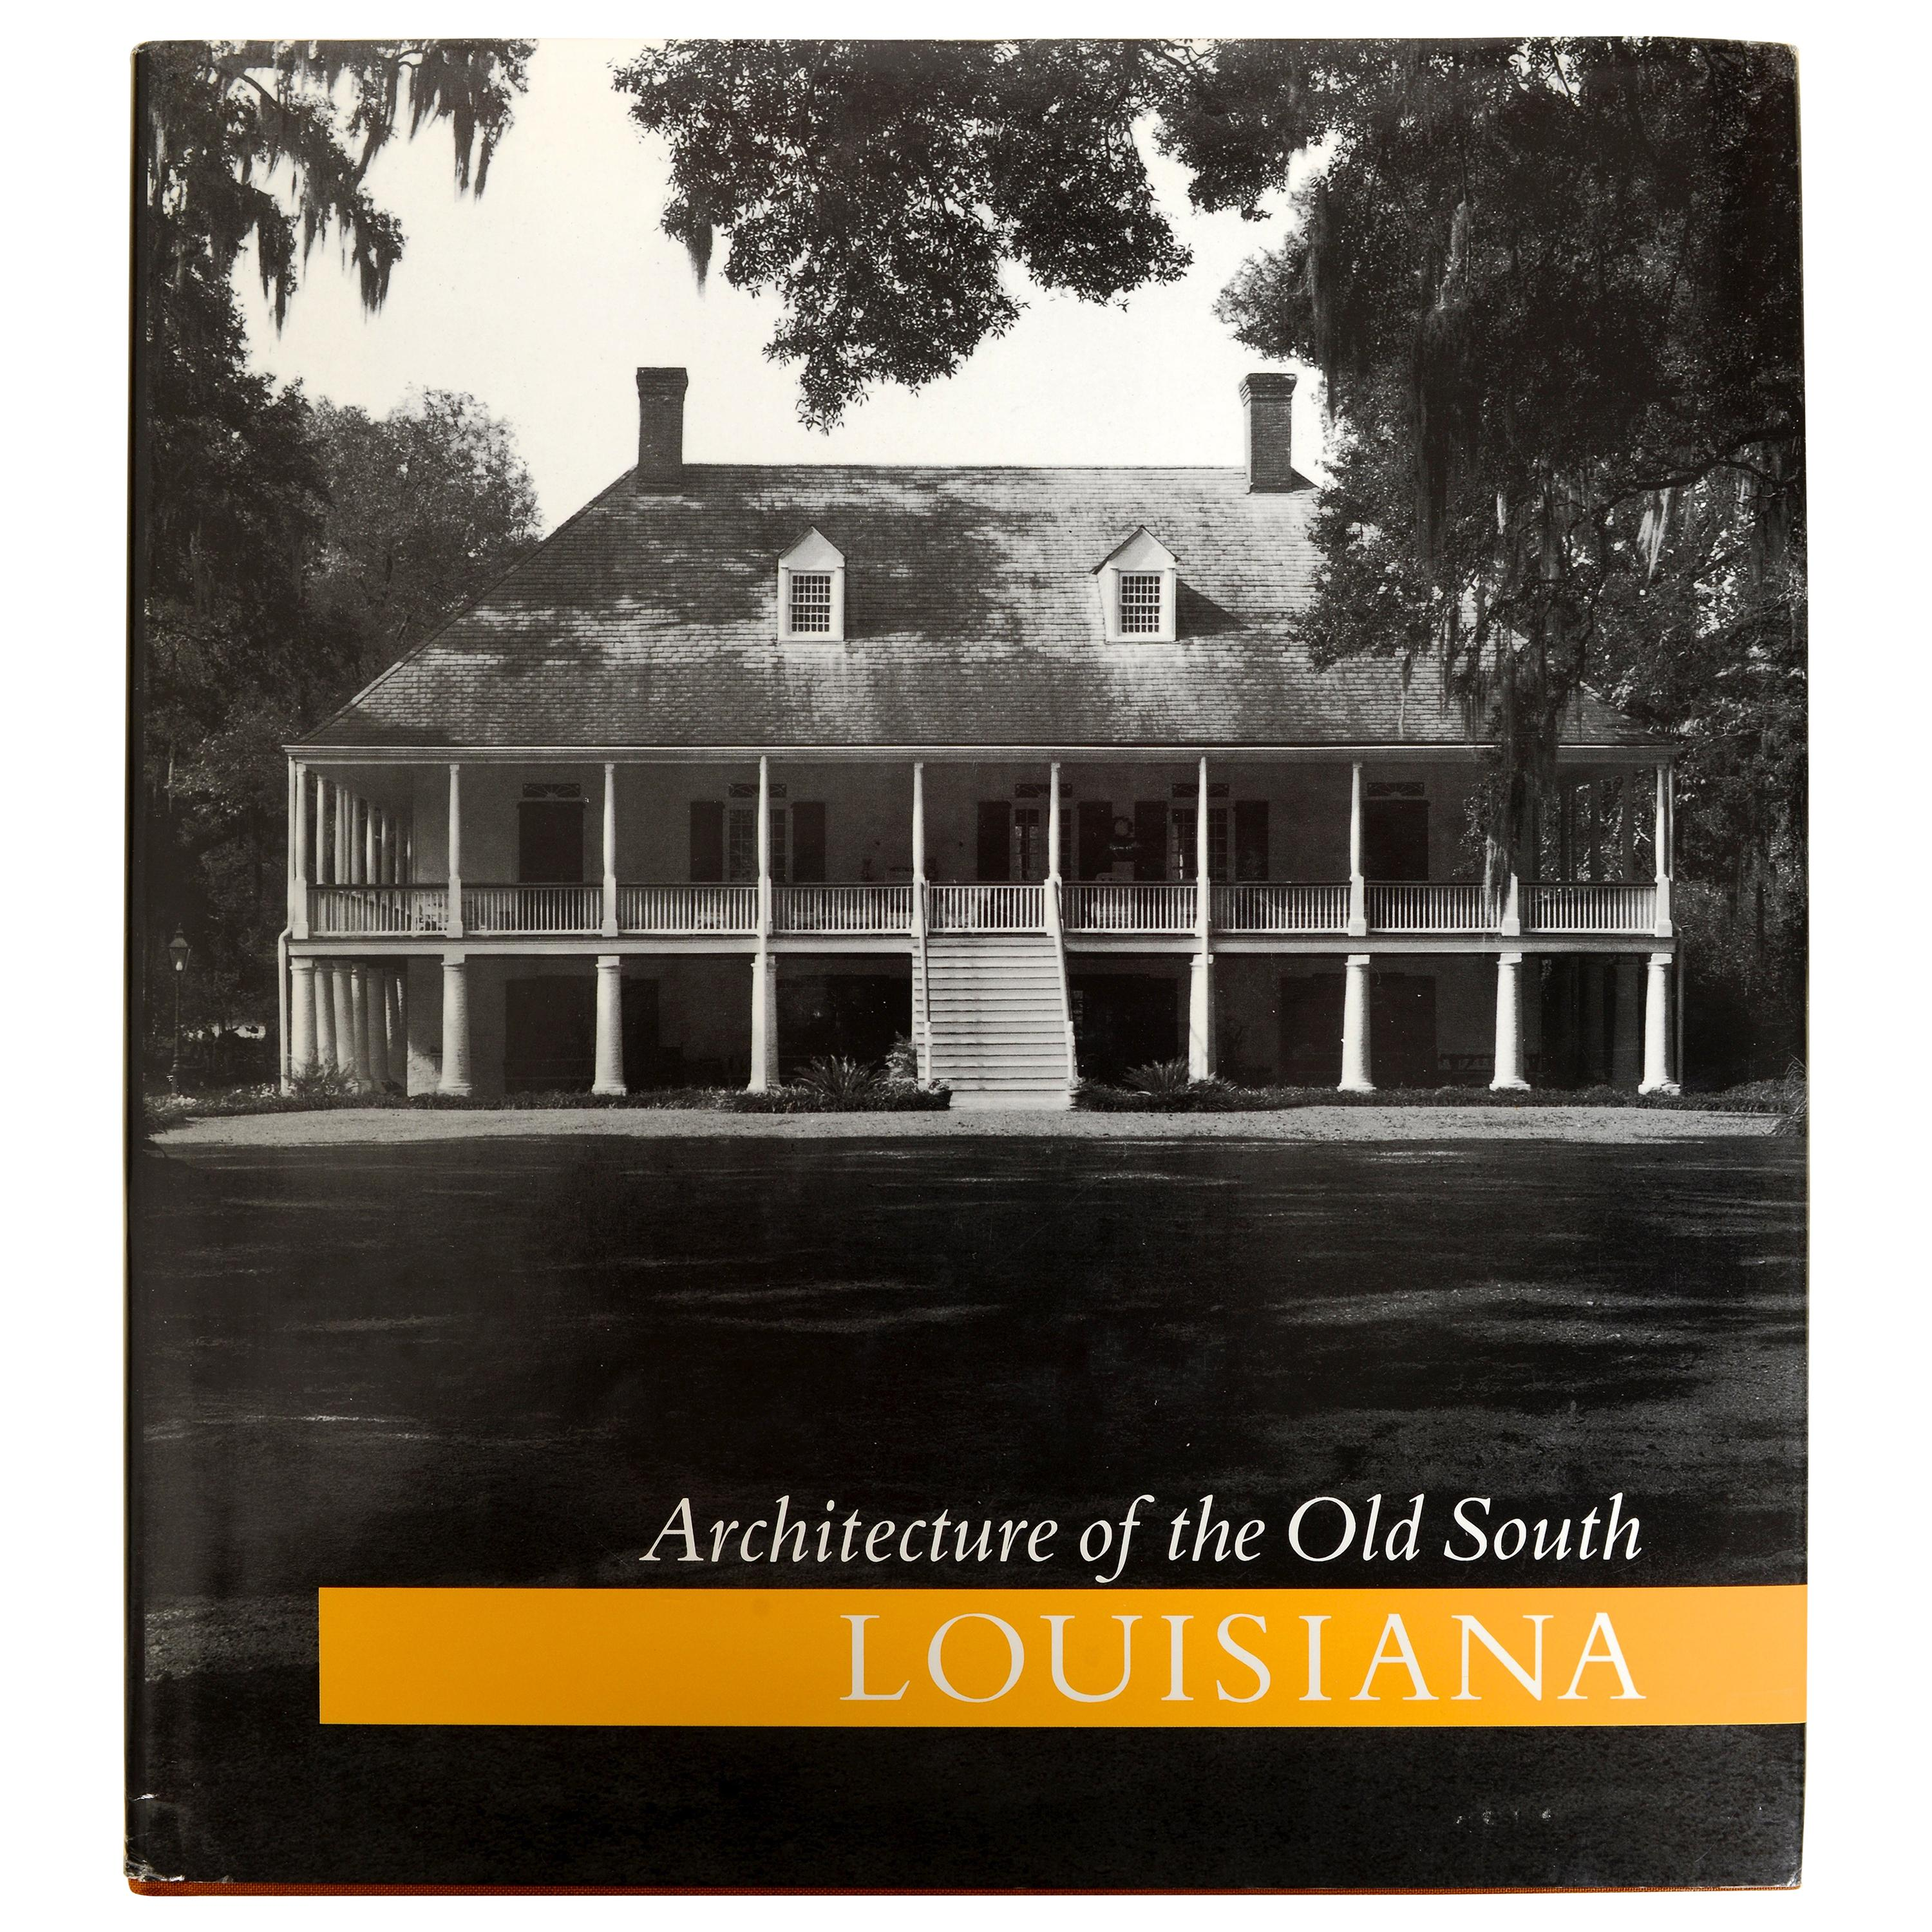 Architecture of the Old South: Louisiana by Mills Lane